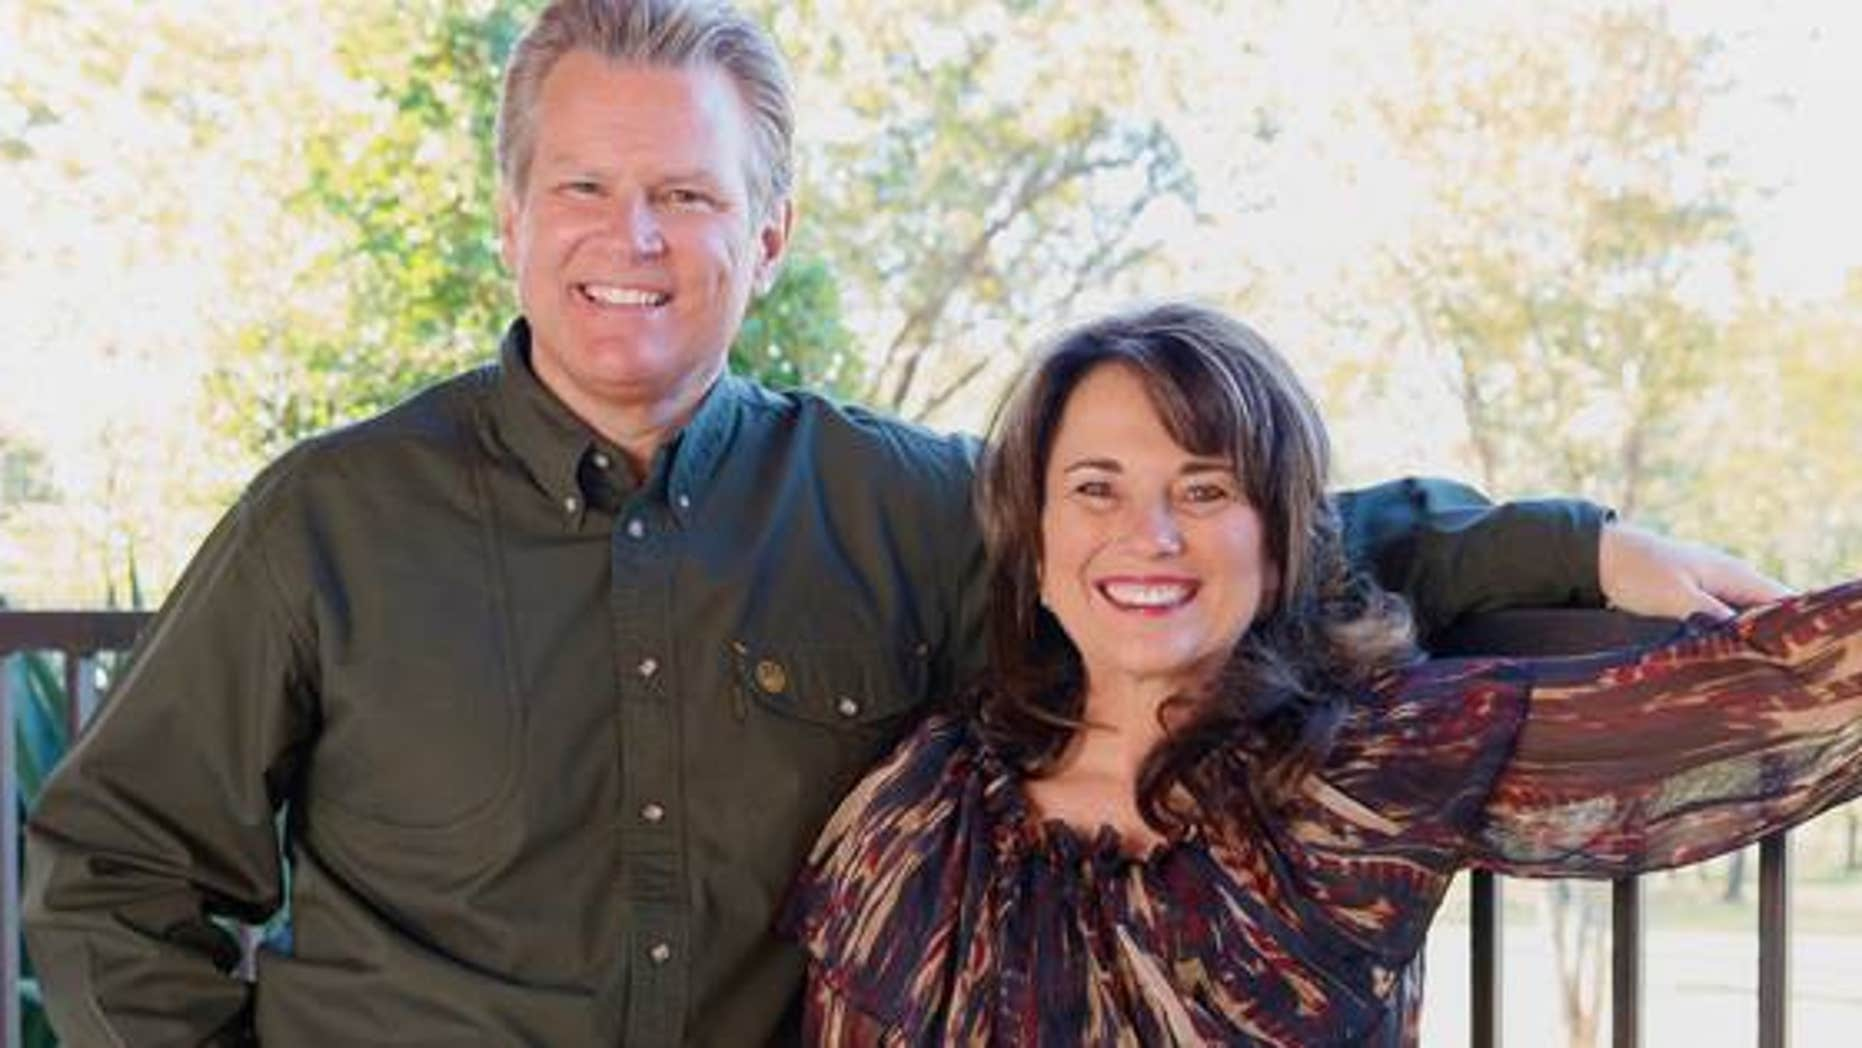 Dr. Gene and Suzanne Lingerfelt